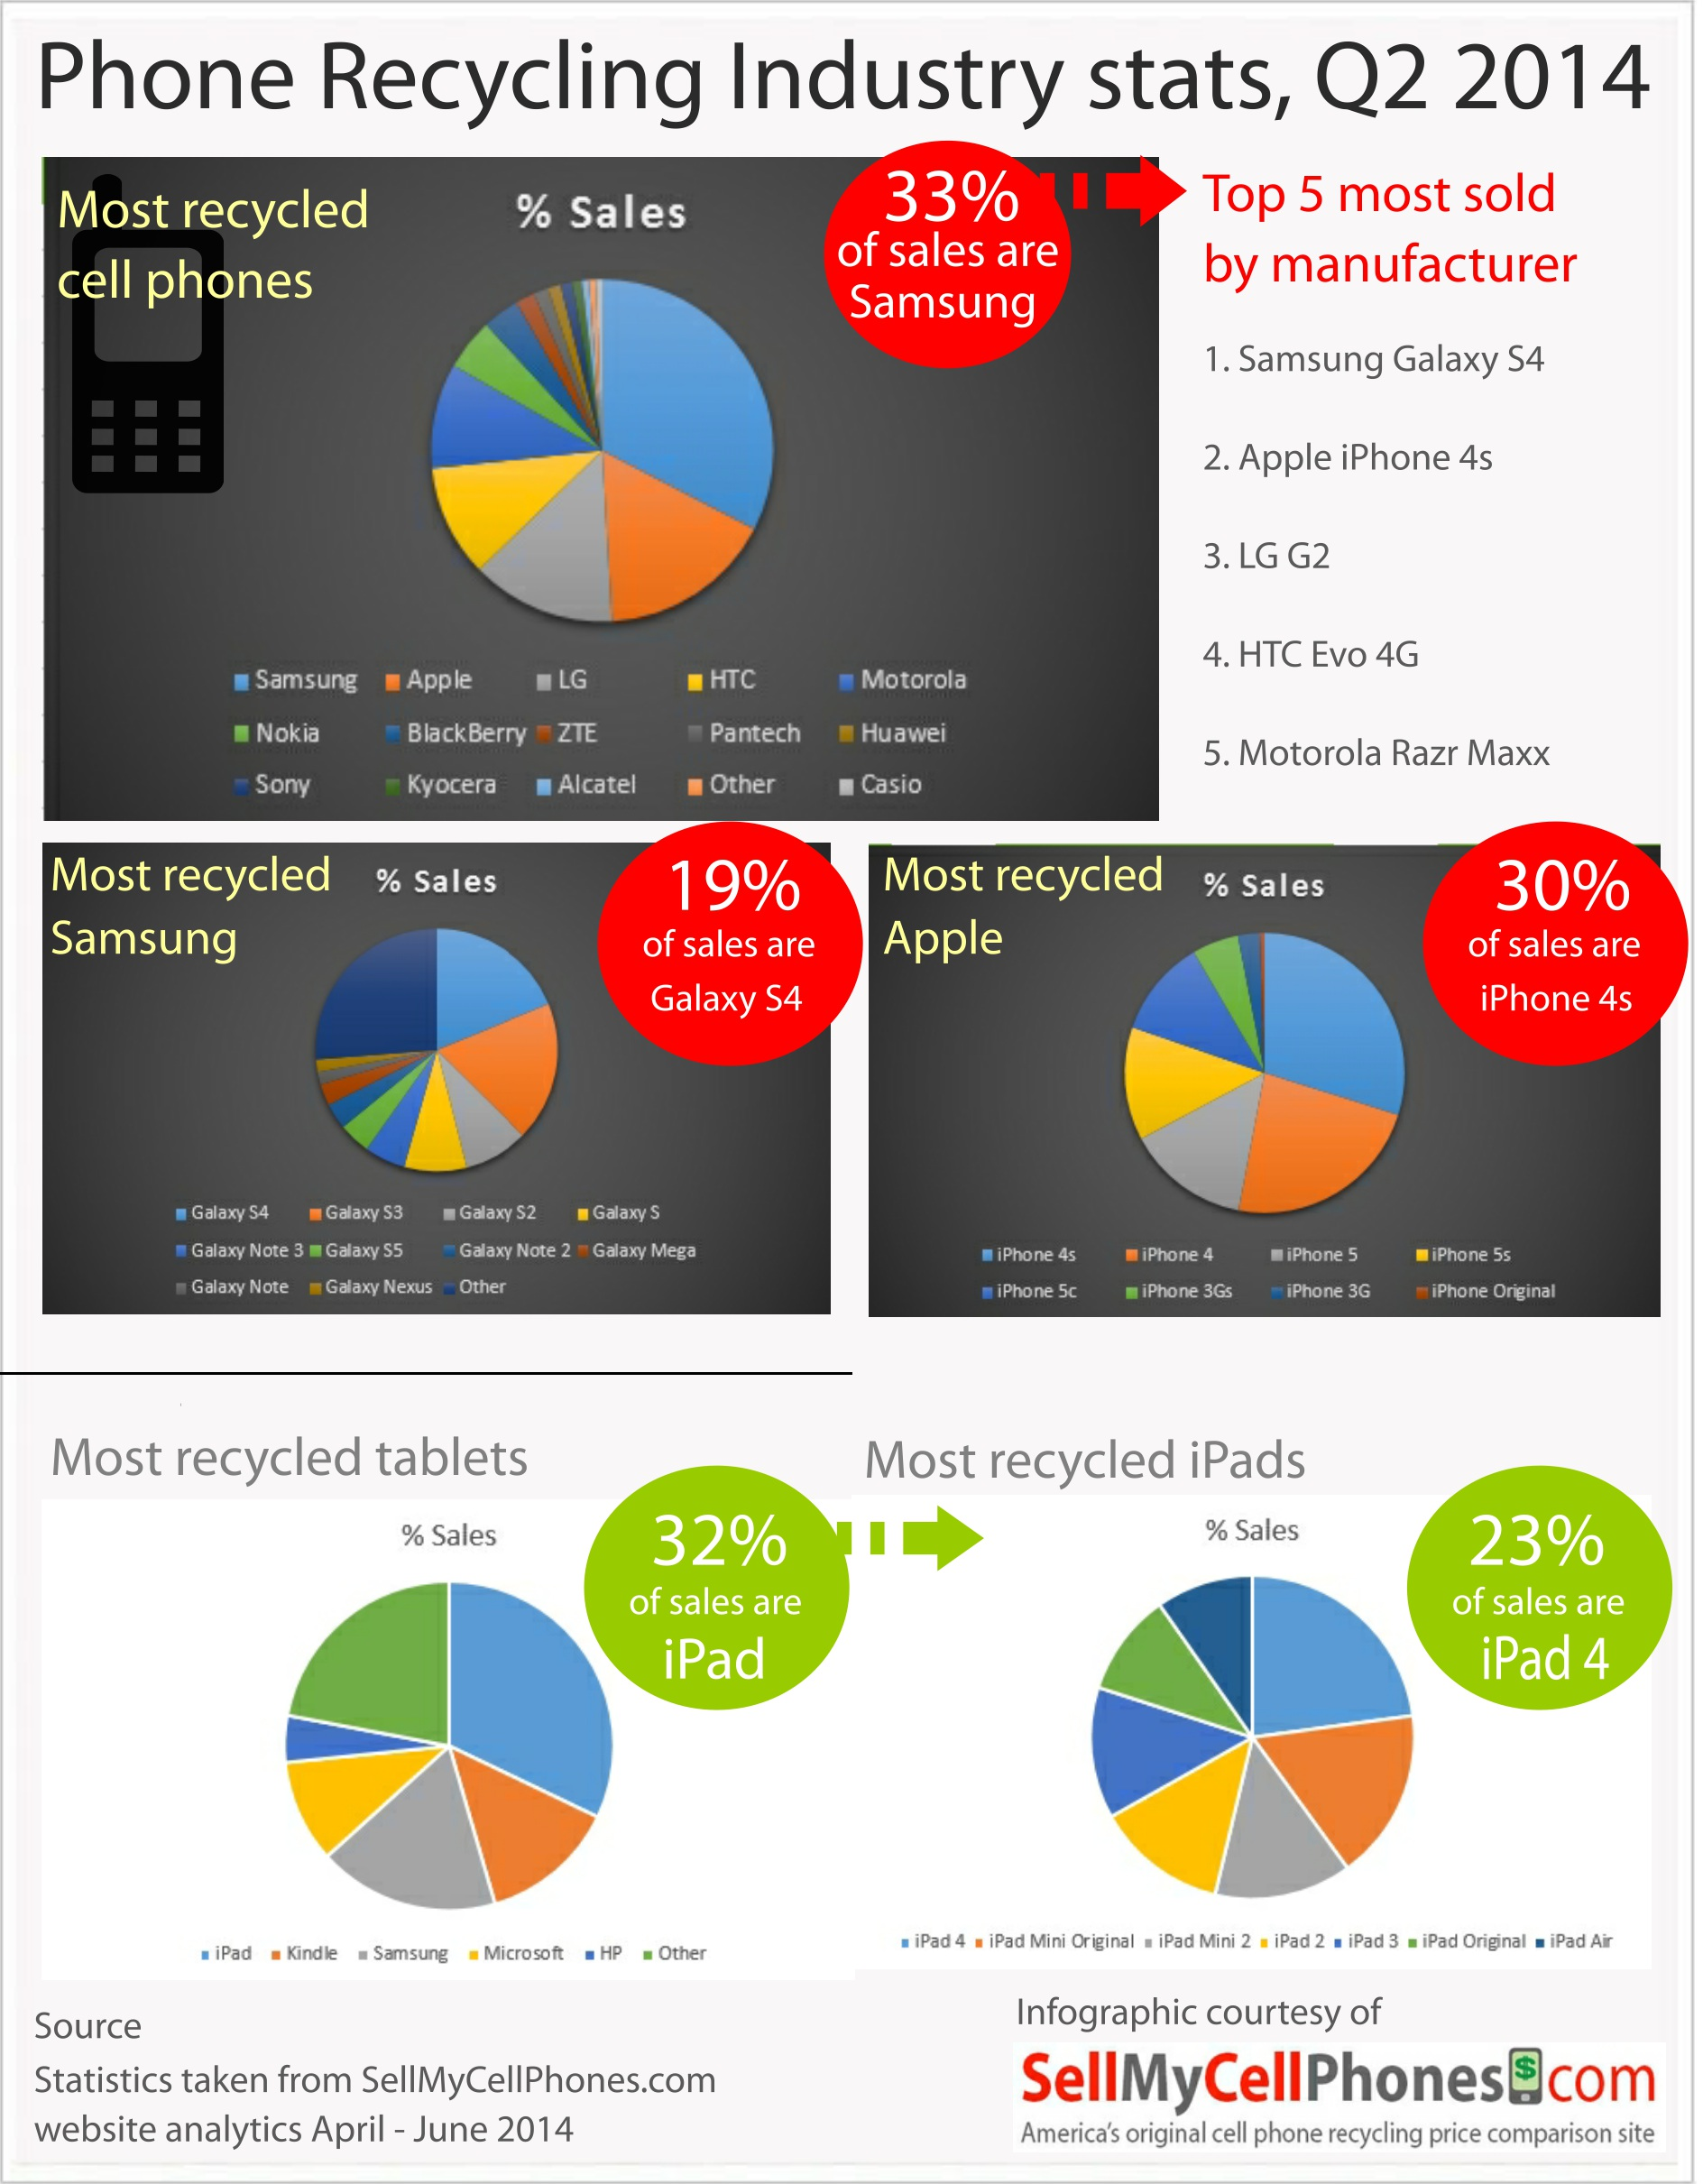 Phone recycling statistics infographic, Q2 2014